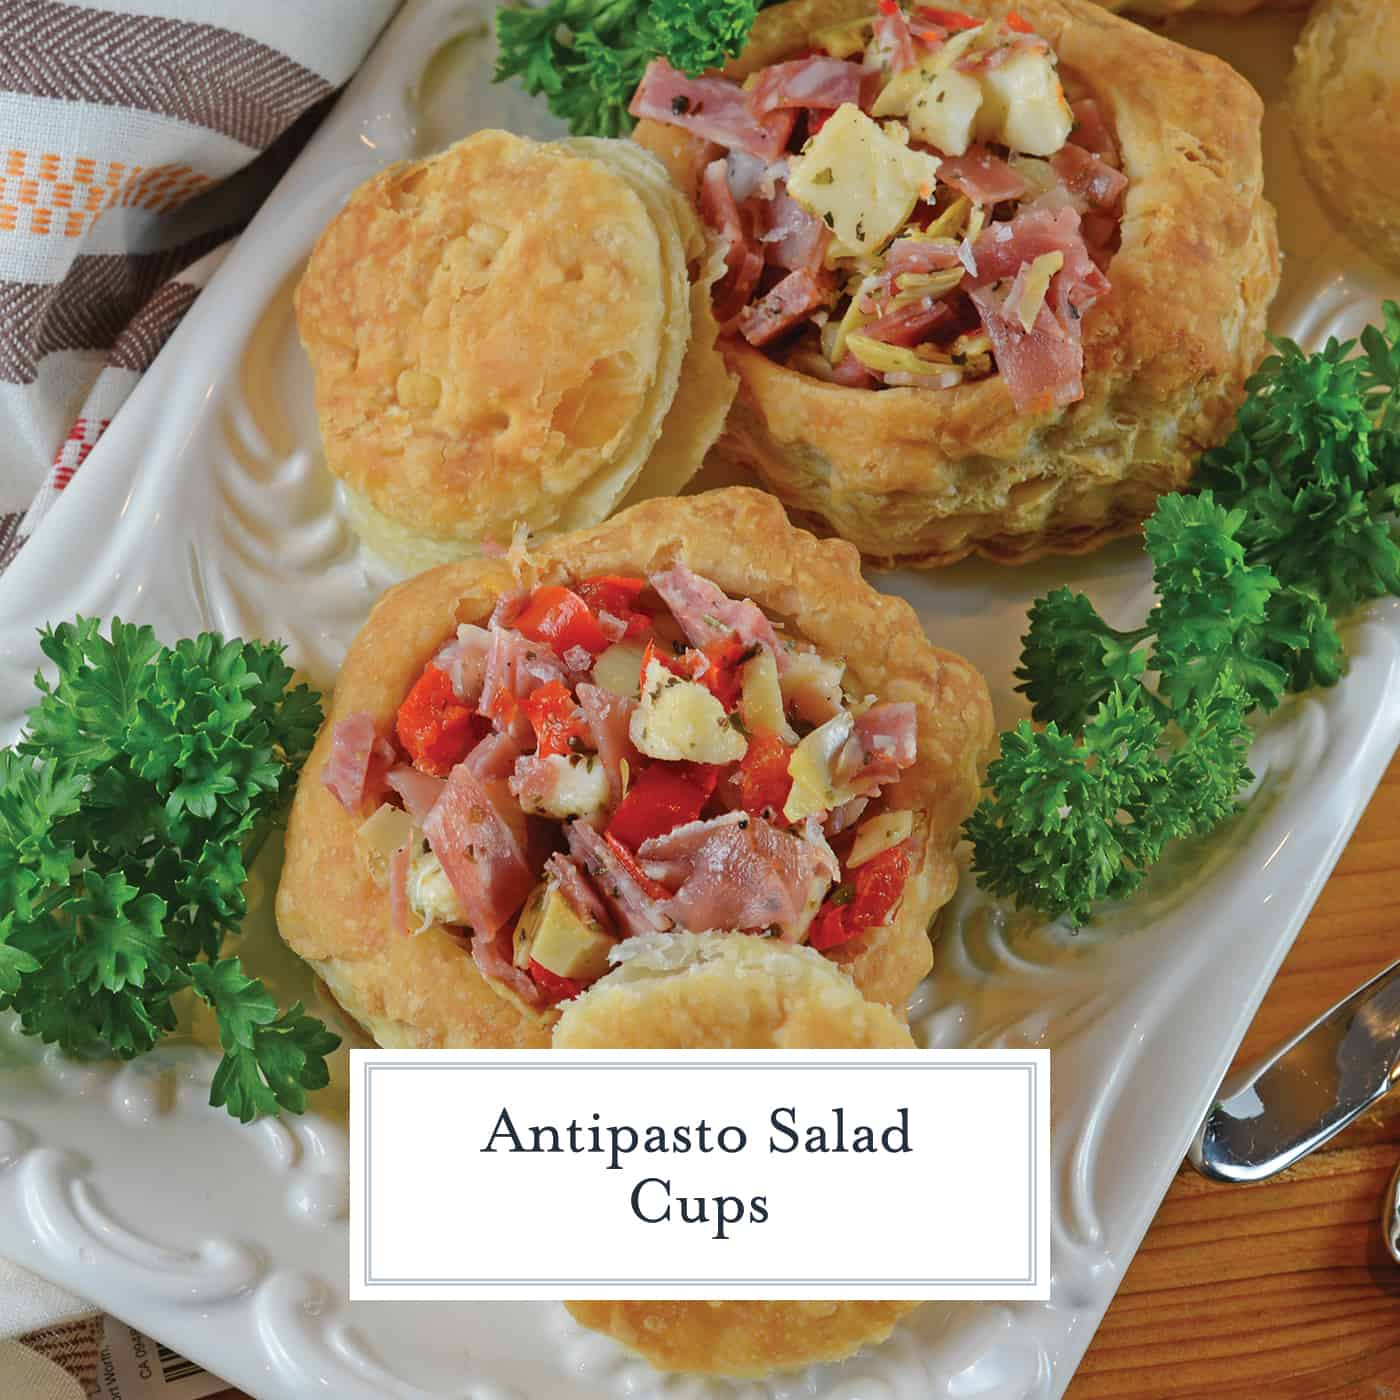 Antipasto Salad Cups are made of chopped salami, prosciutto, sopressata, mozzarella cheese, peppadews and artichokes. The best way to eat salad with your fingers!